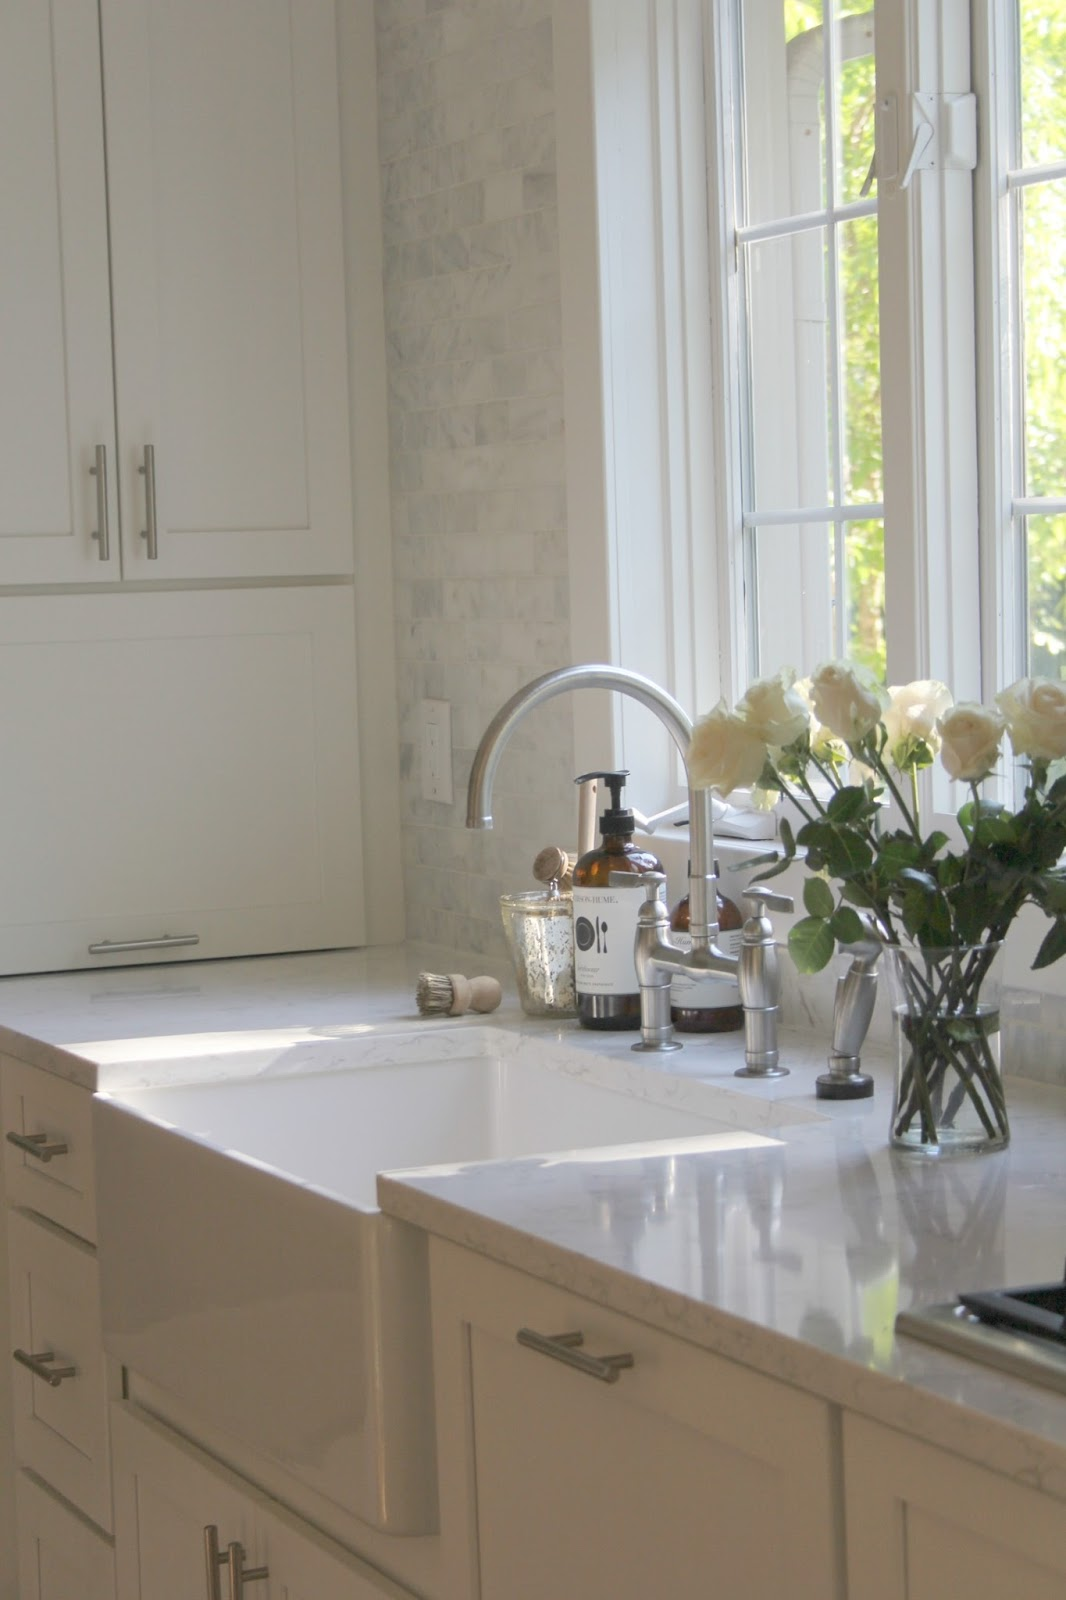 How To Choose The Right White Quartz For Kitchen Countertops Hello Lovely